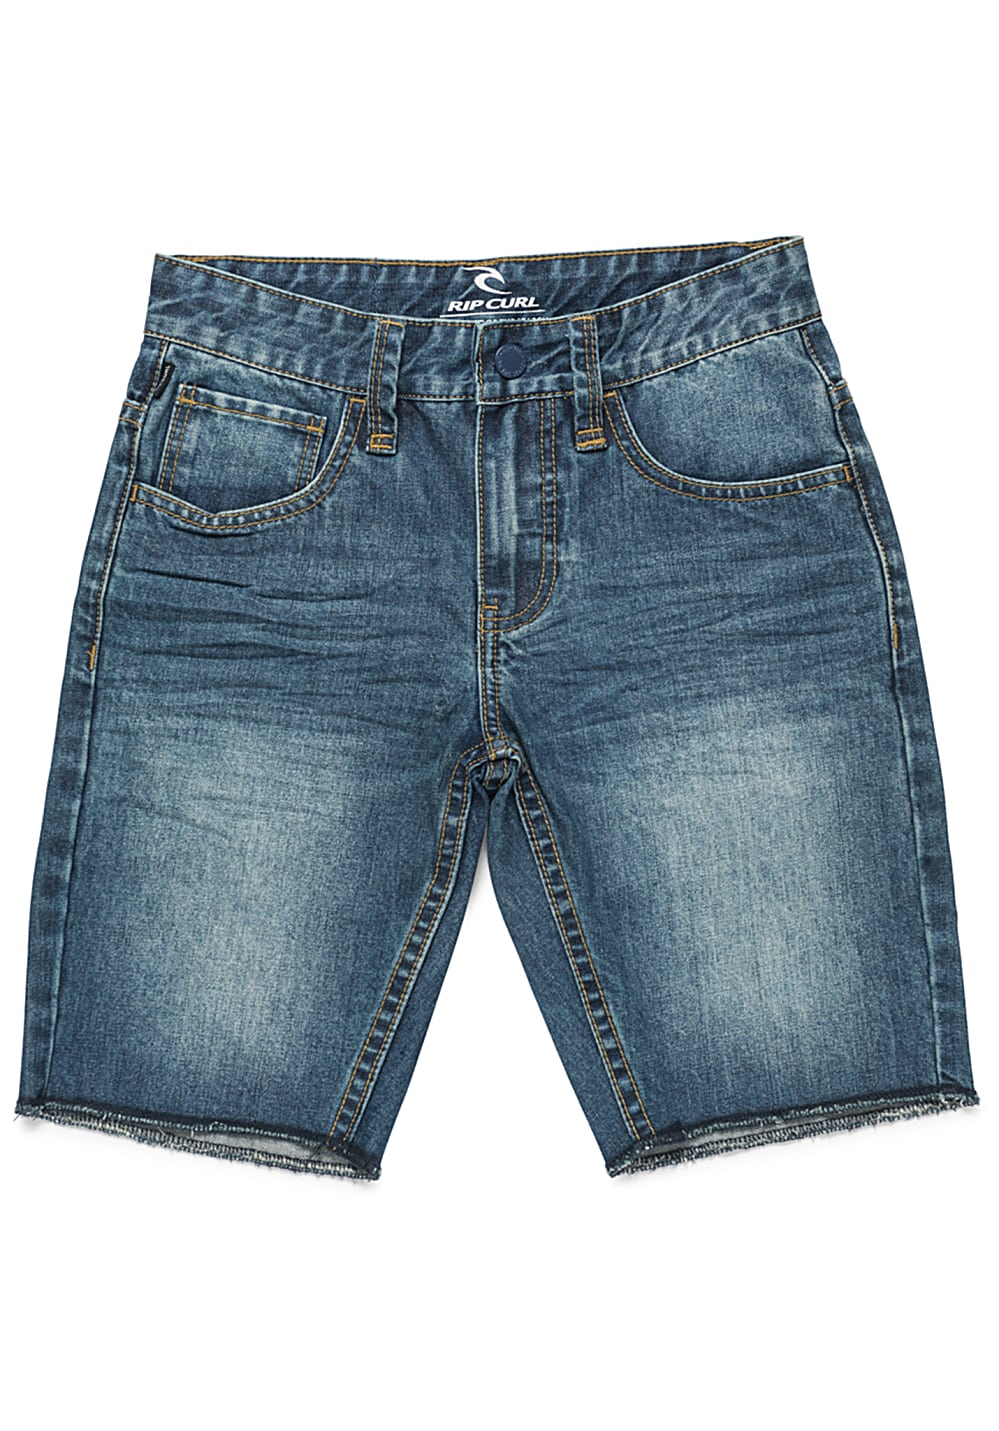 Boyshosen - Rip Curl 5 Pocket Denim Shorts Blau - Onlineshop Planet Sports